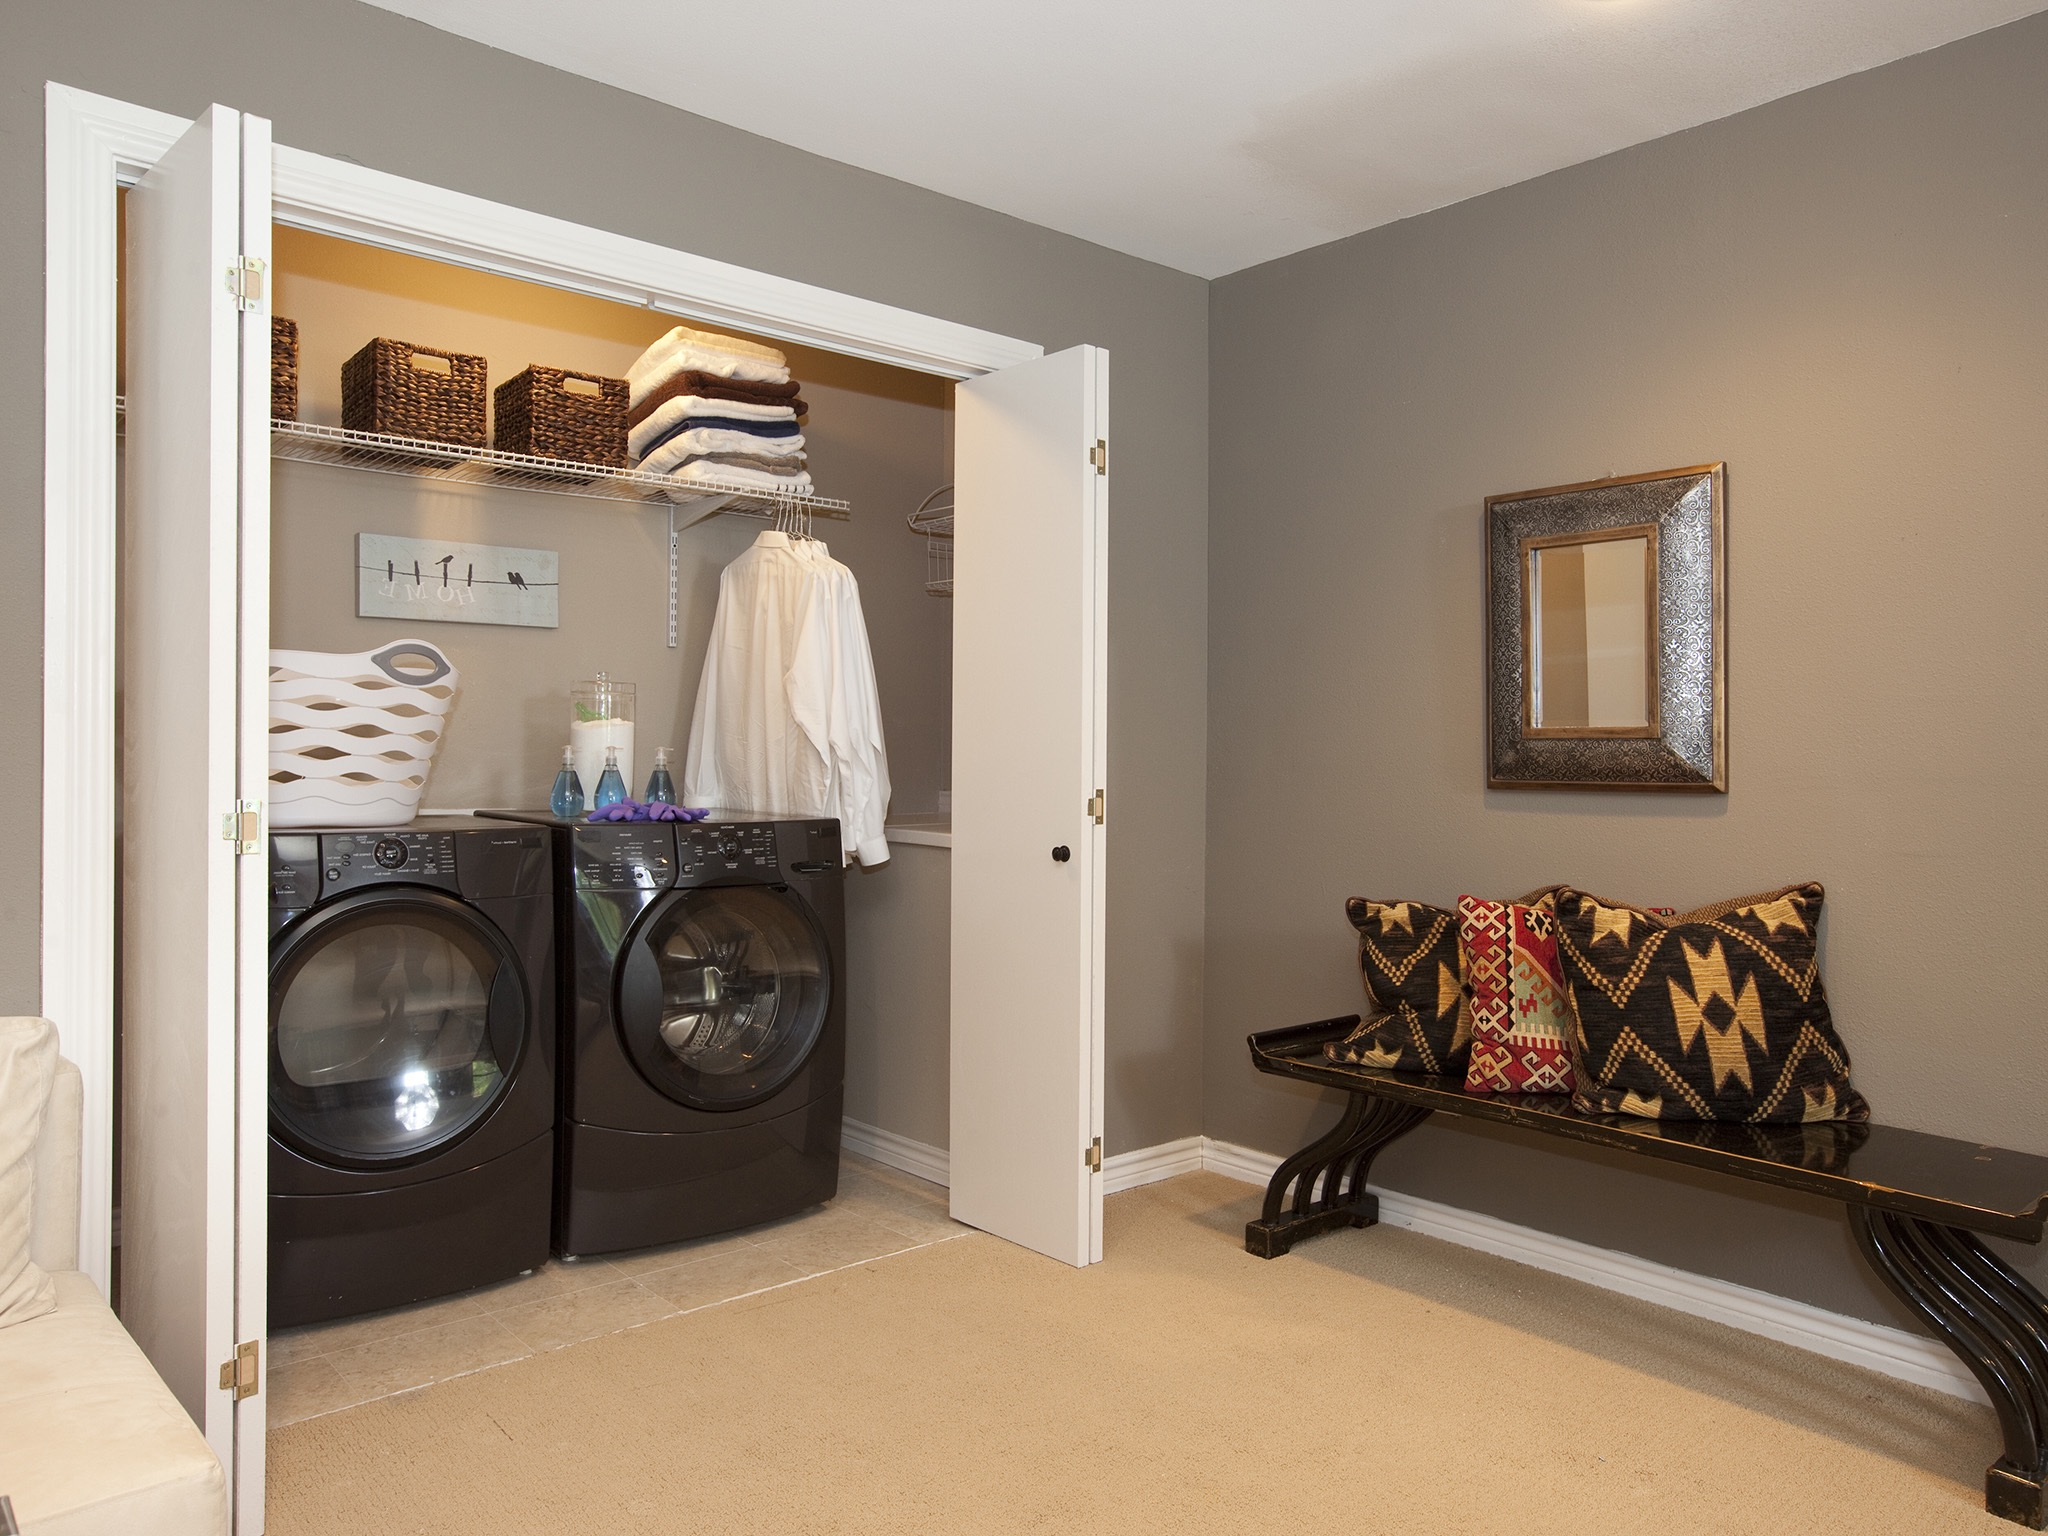 Modern Built In Laundry Room Closet Cabinet (Image 15 of 26)